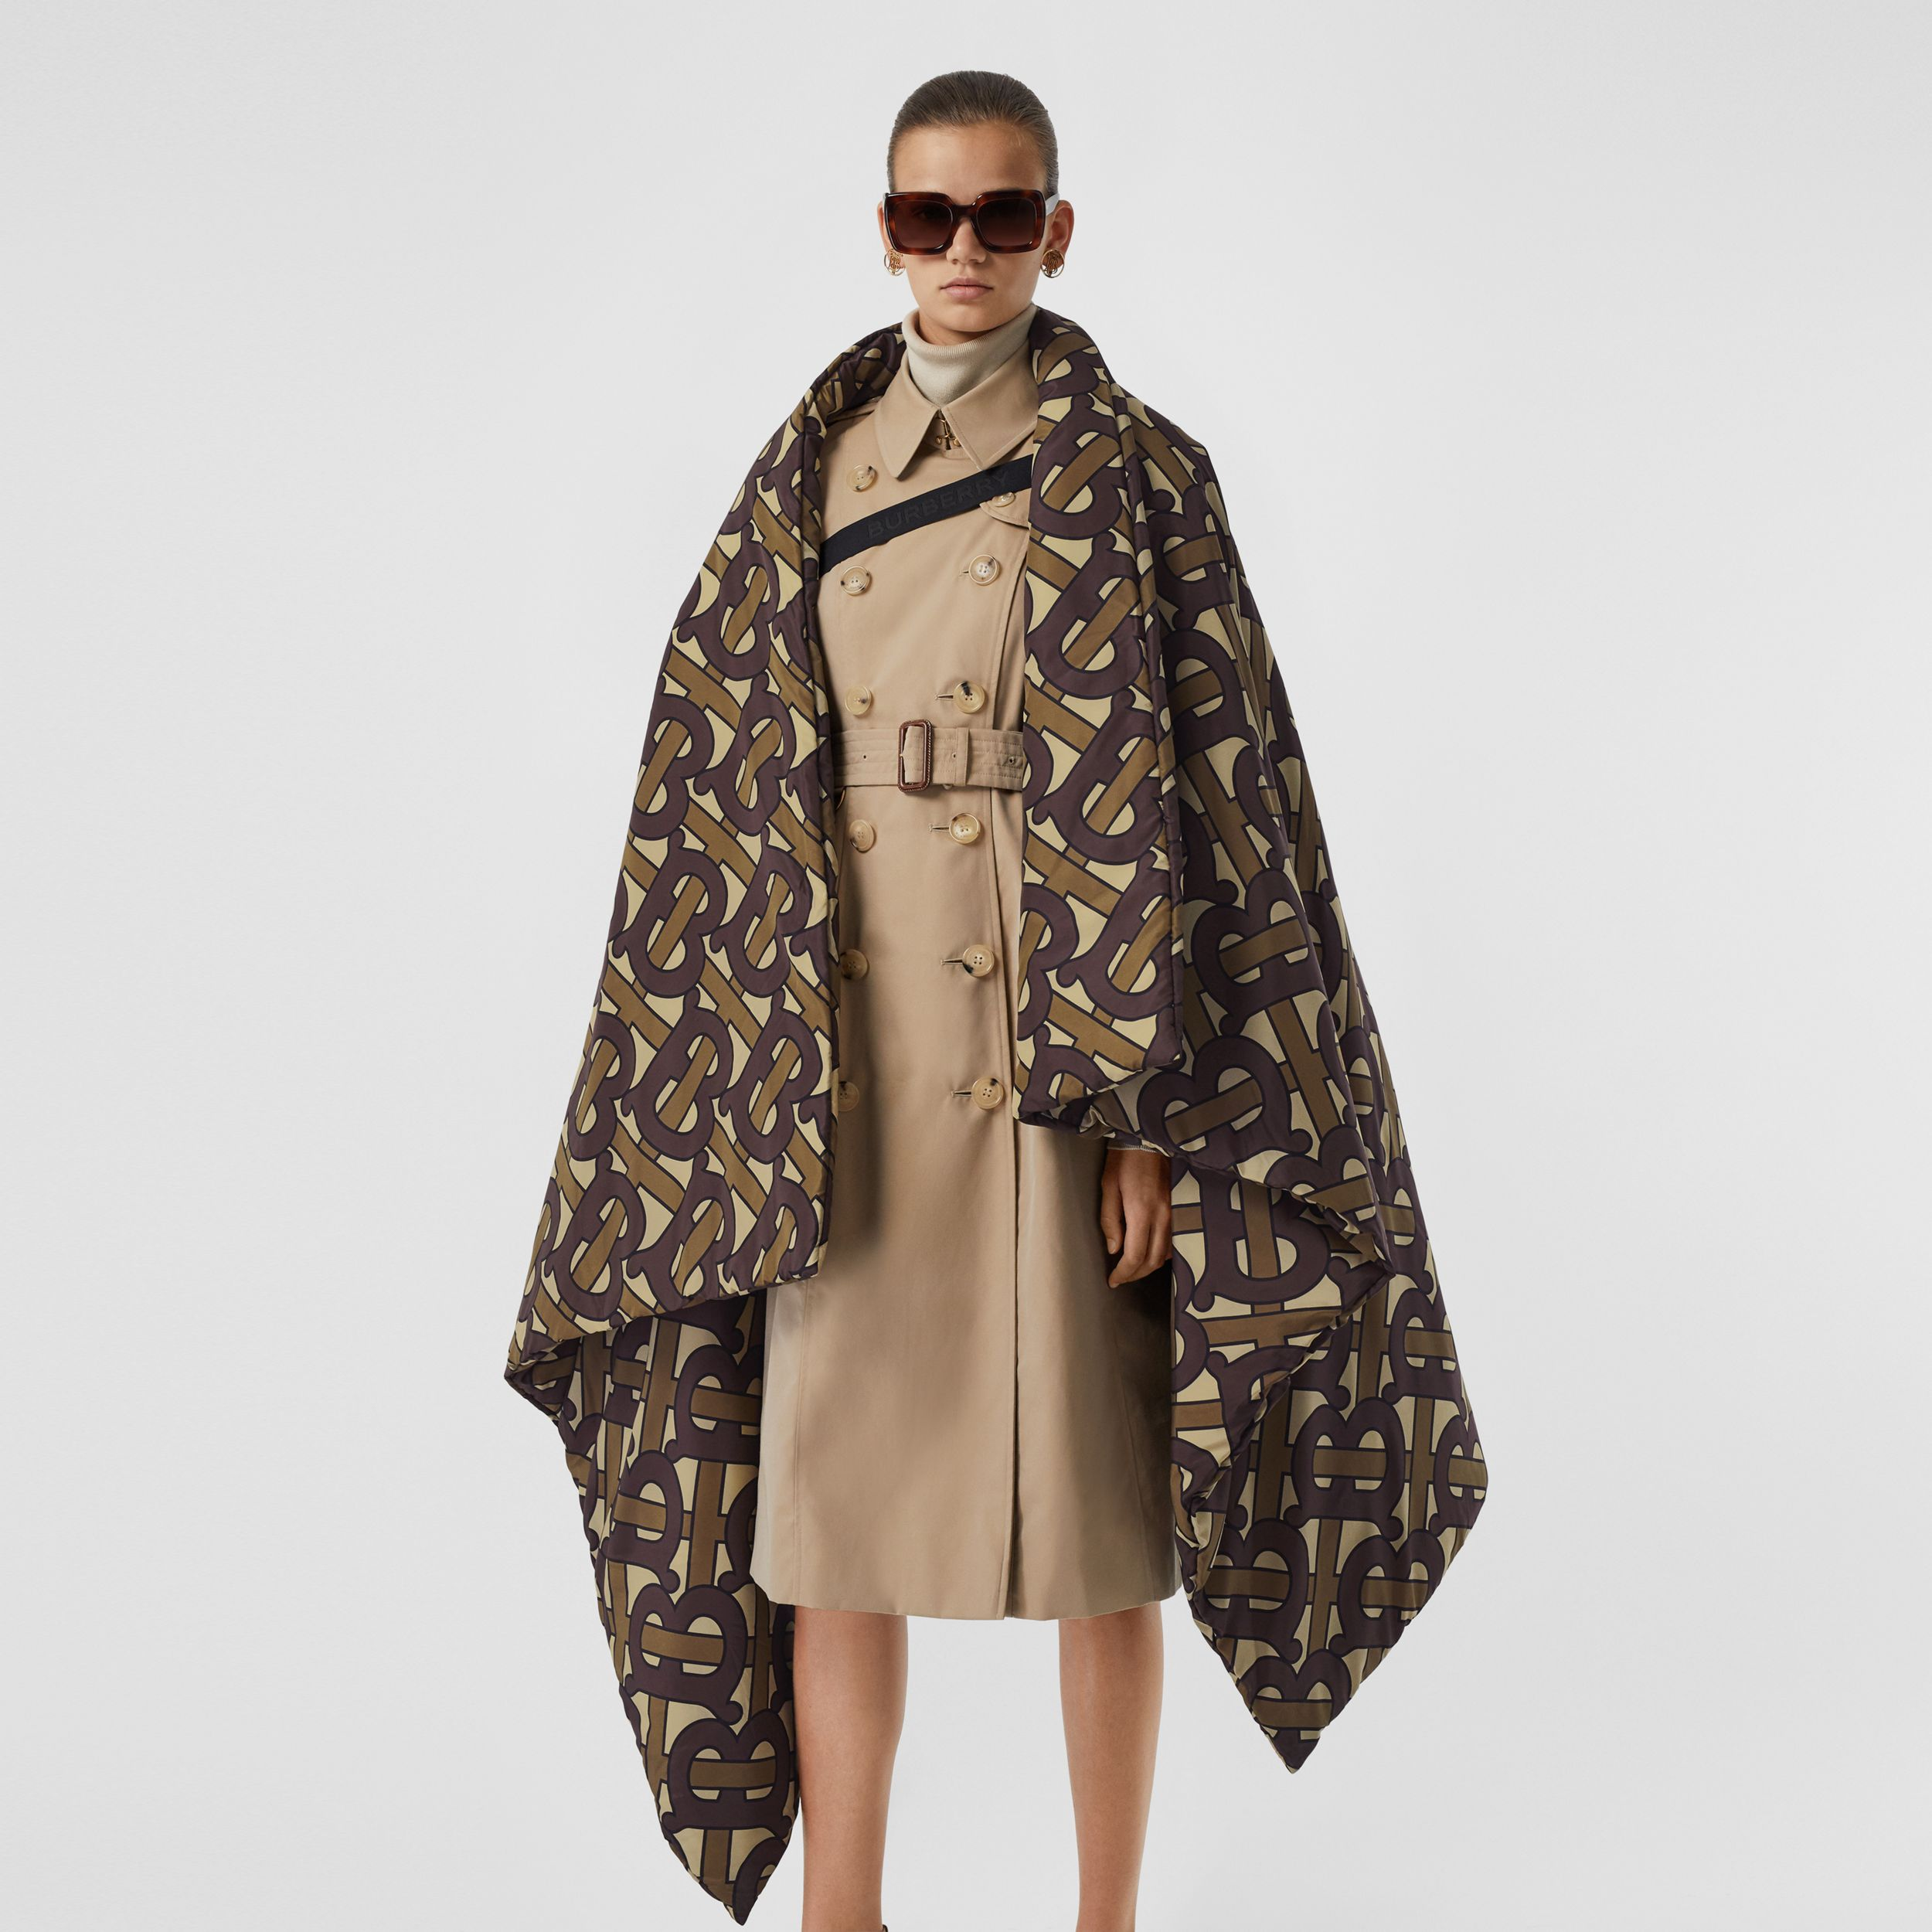 Monogram Print Oversized Puffer Cape in Bridle Brown | Burberry Australia - 4